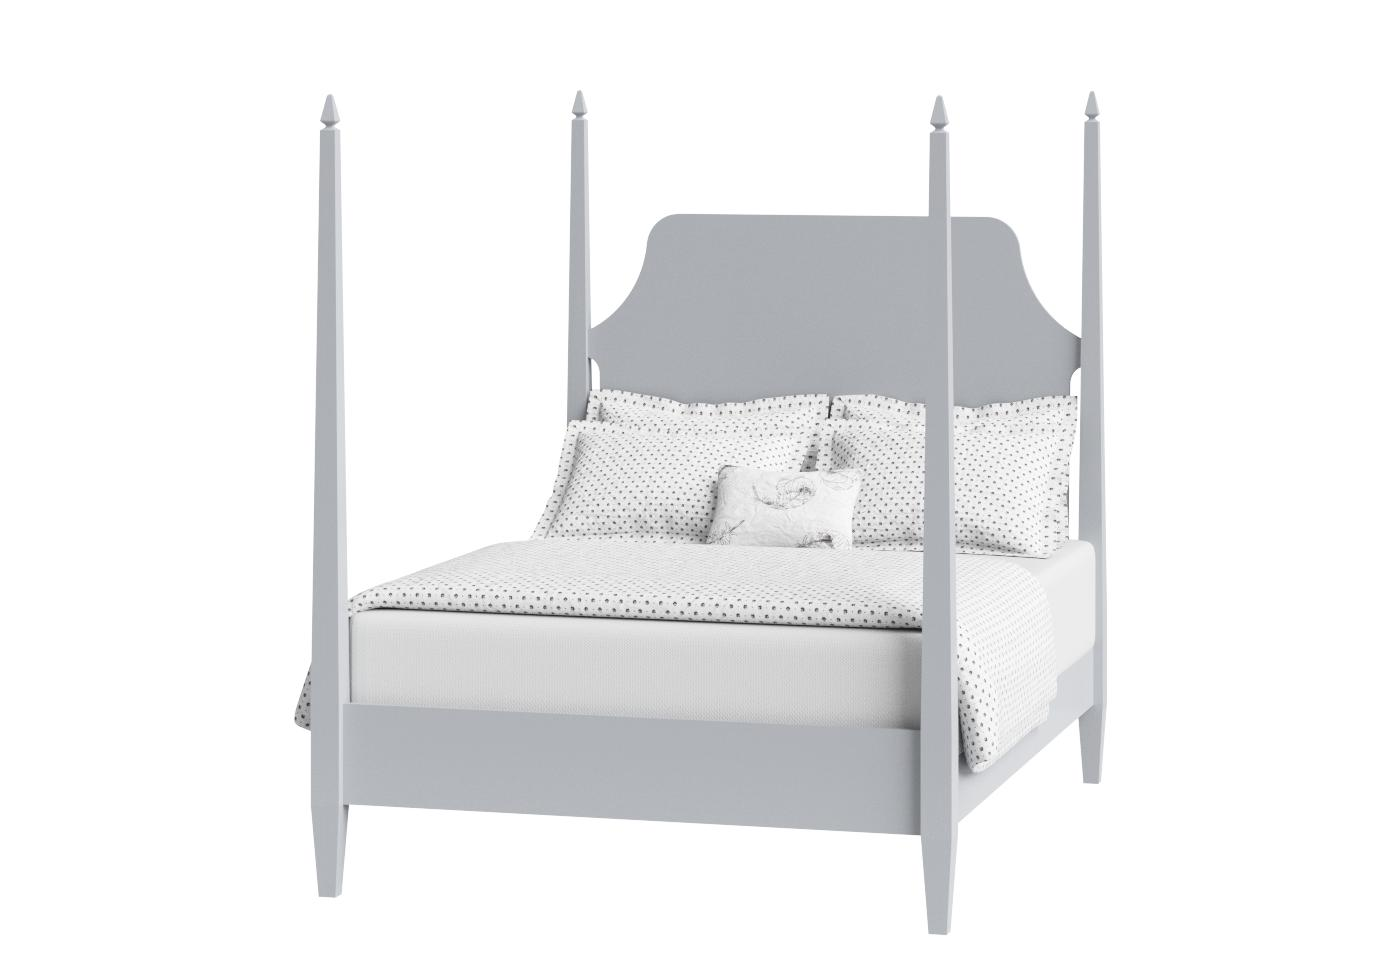 Cutout of Turner four poster painted wood bed in grey